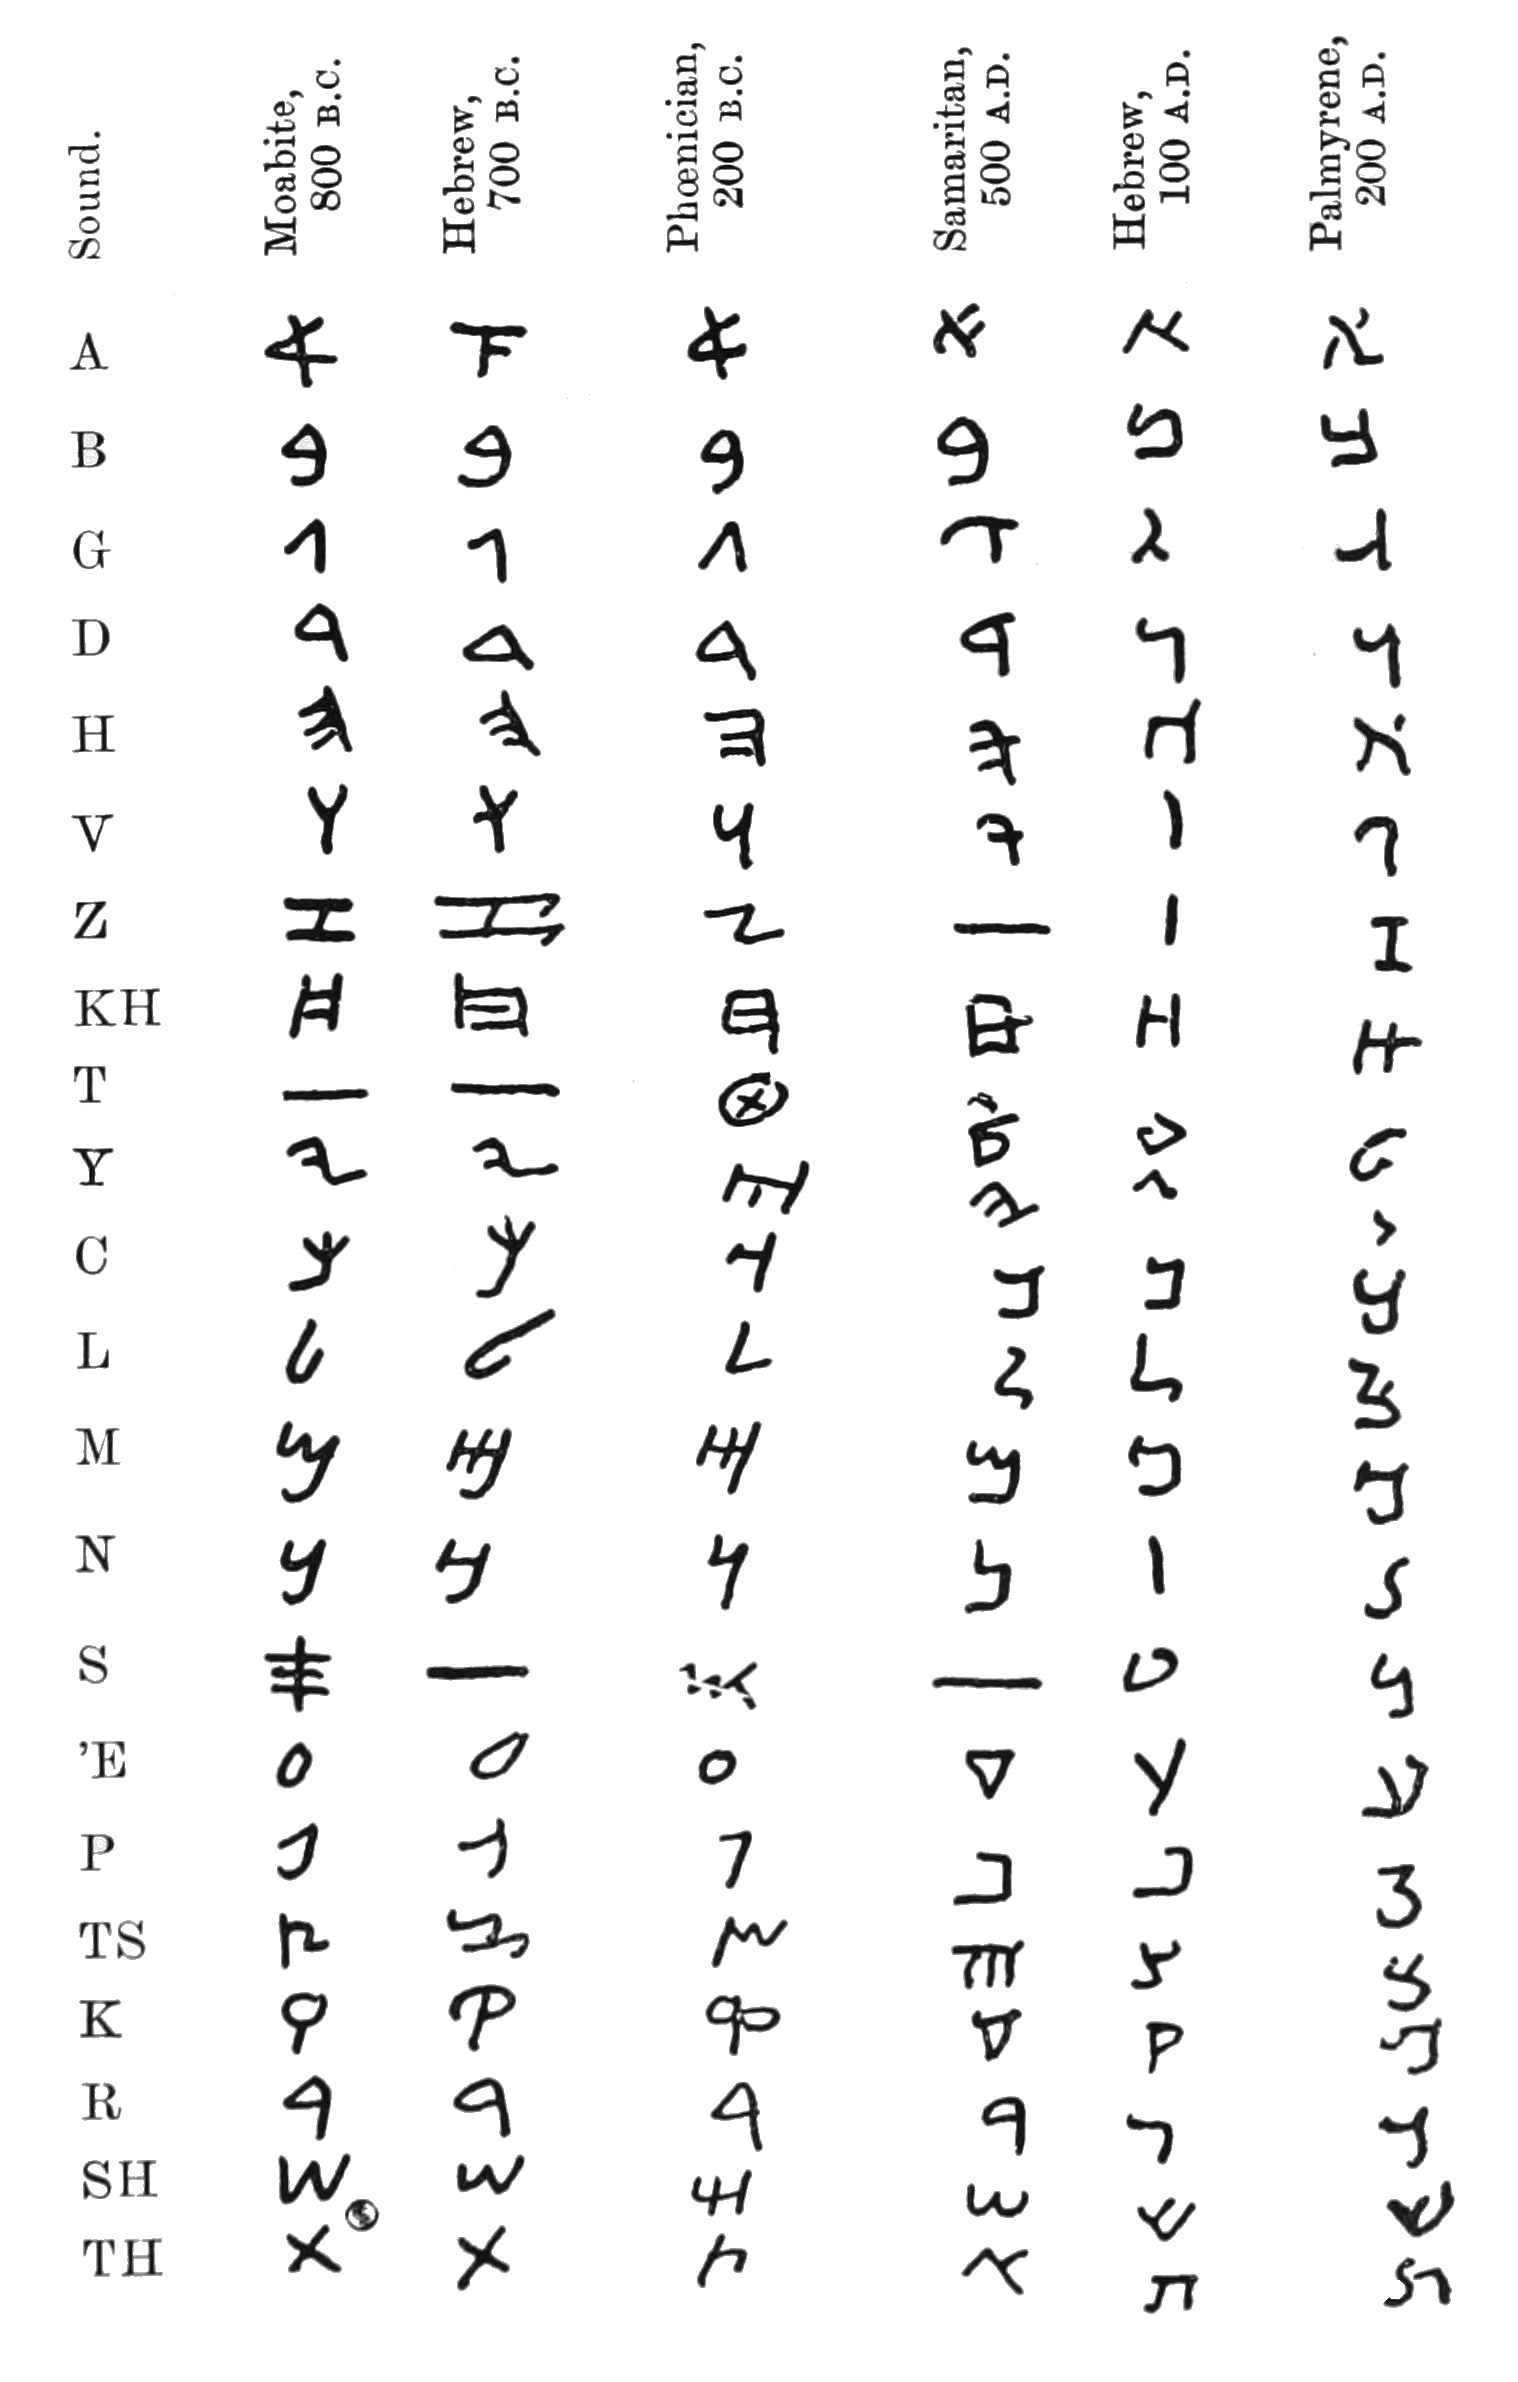 Ancient Alphabets